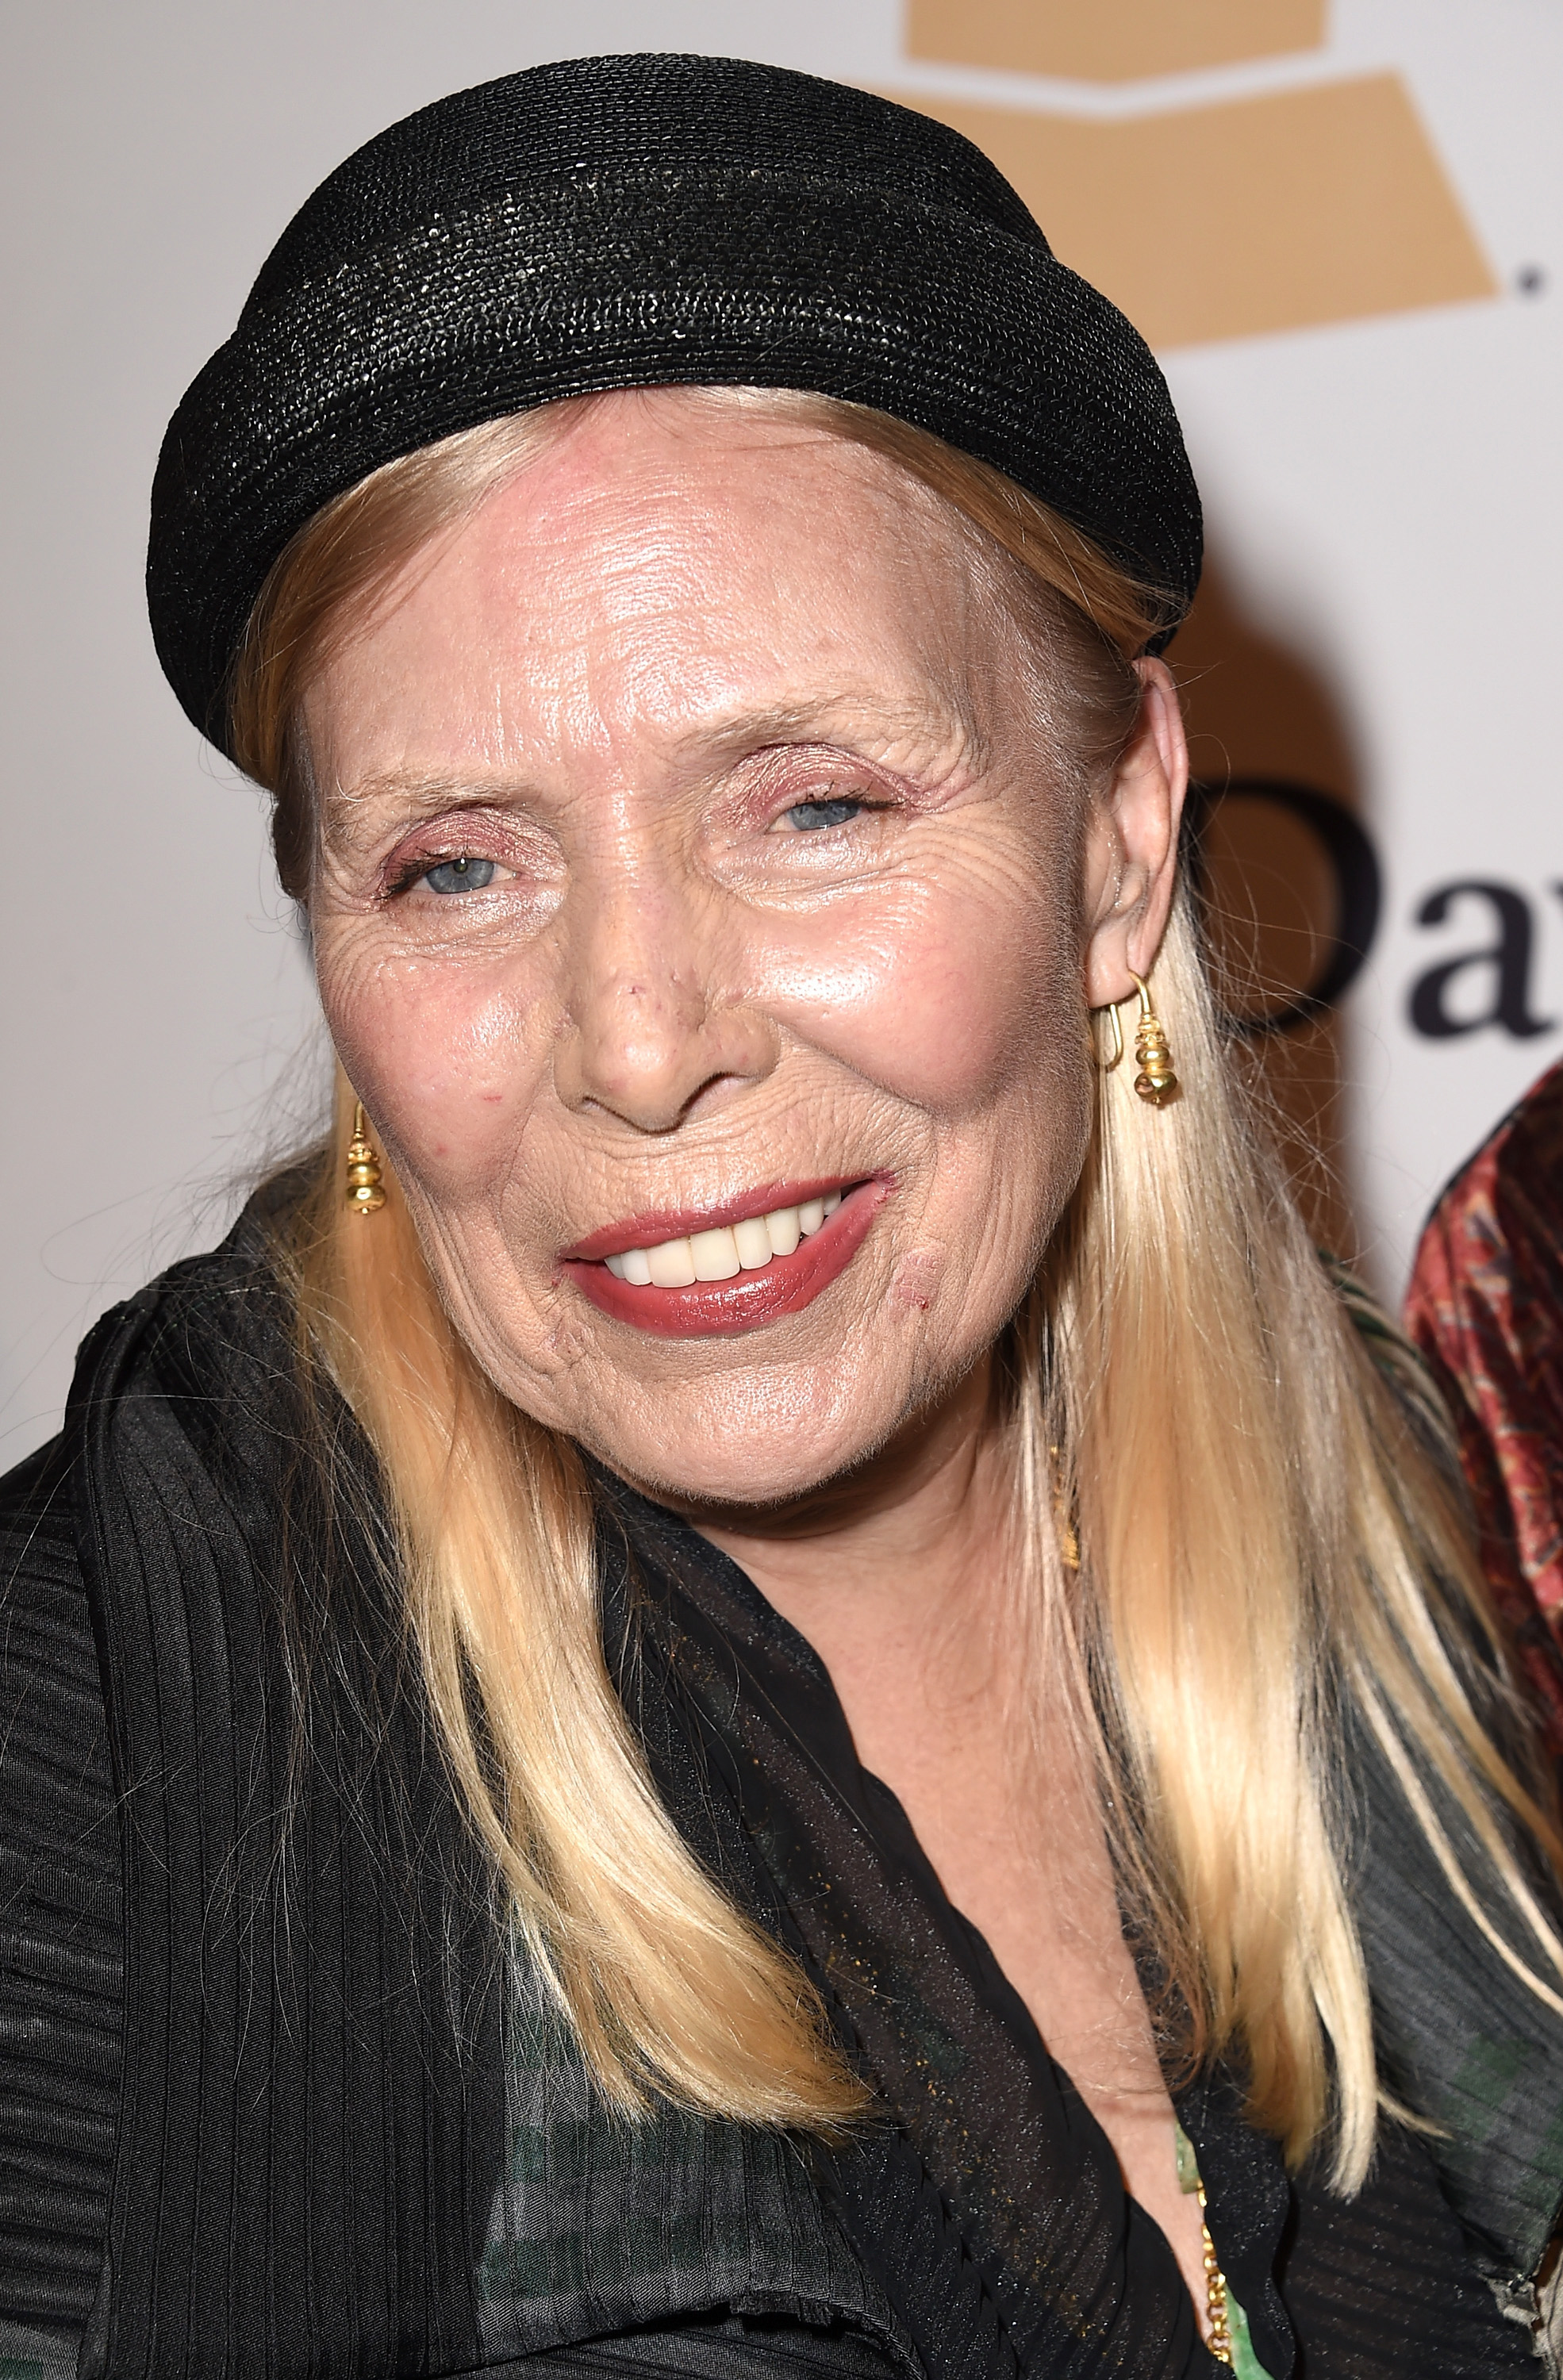 Singer-songwriter Joni Mitchell attends the Pre-Grammy Gala and Salute To Industry Icons honoring Martin Bandier in Los Angeles on February 7, 2015.